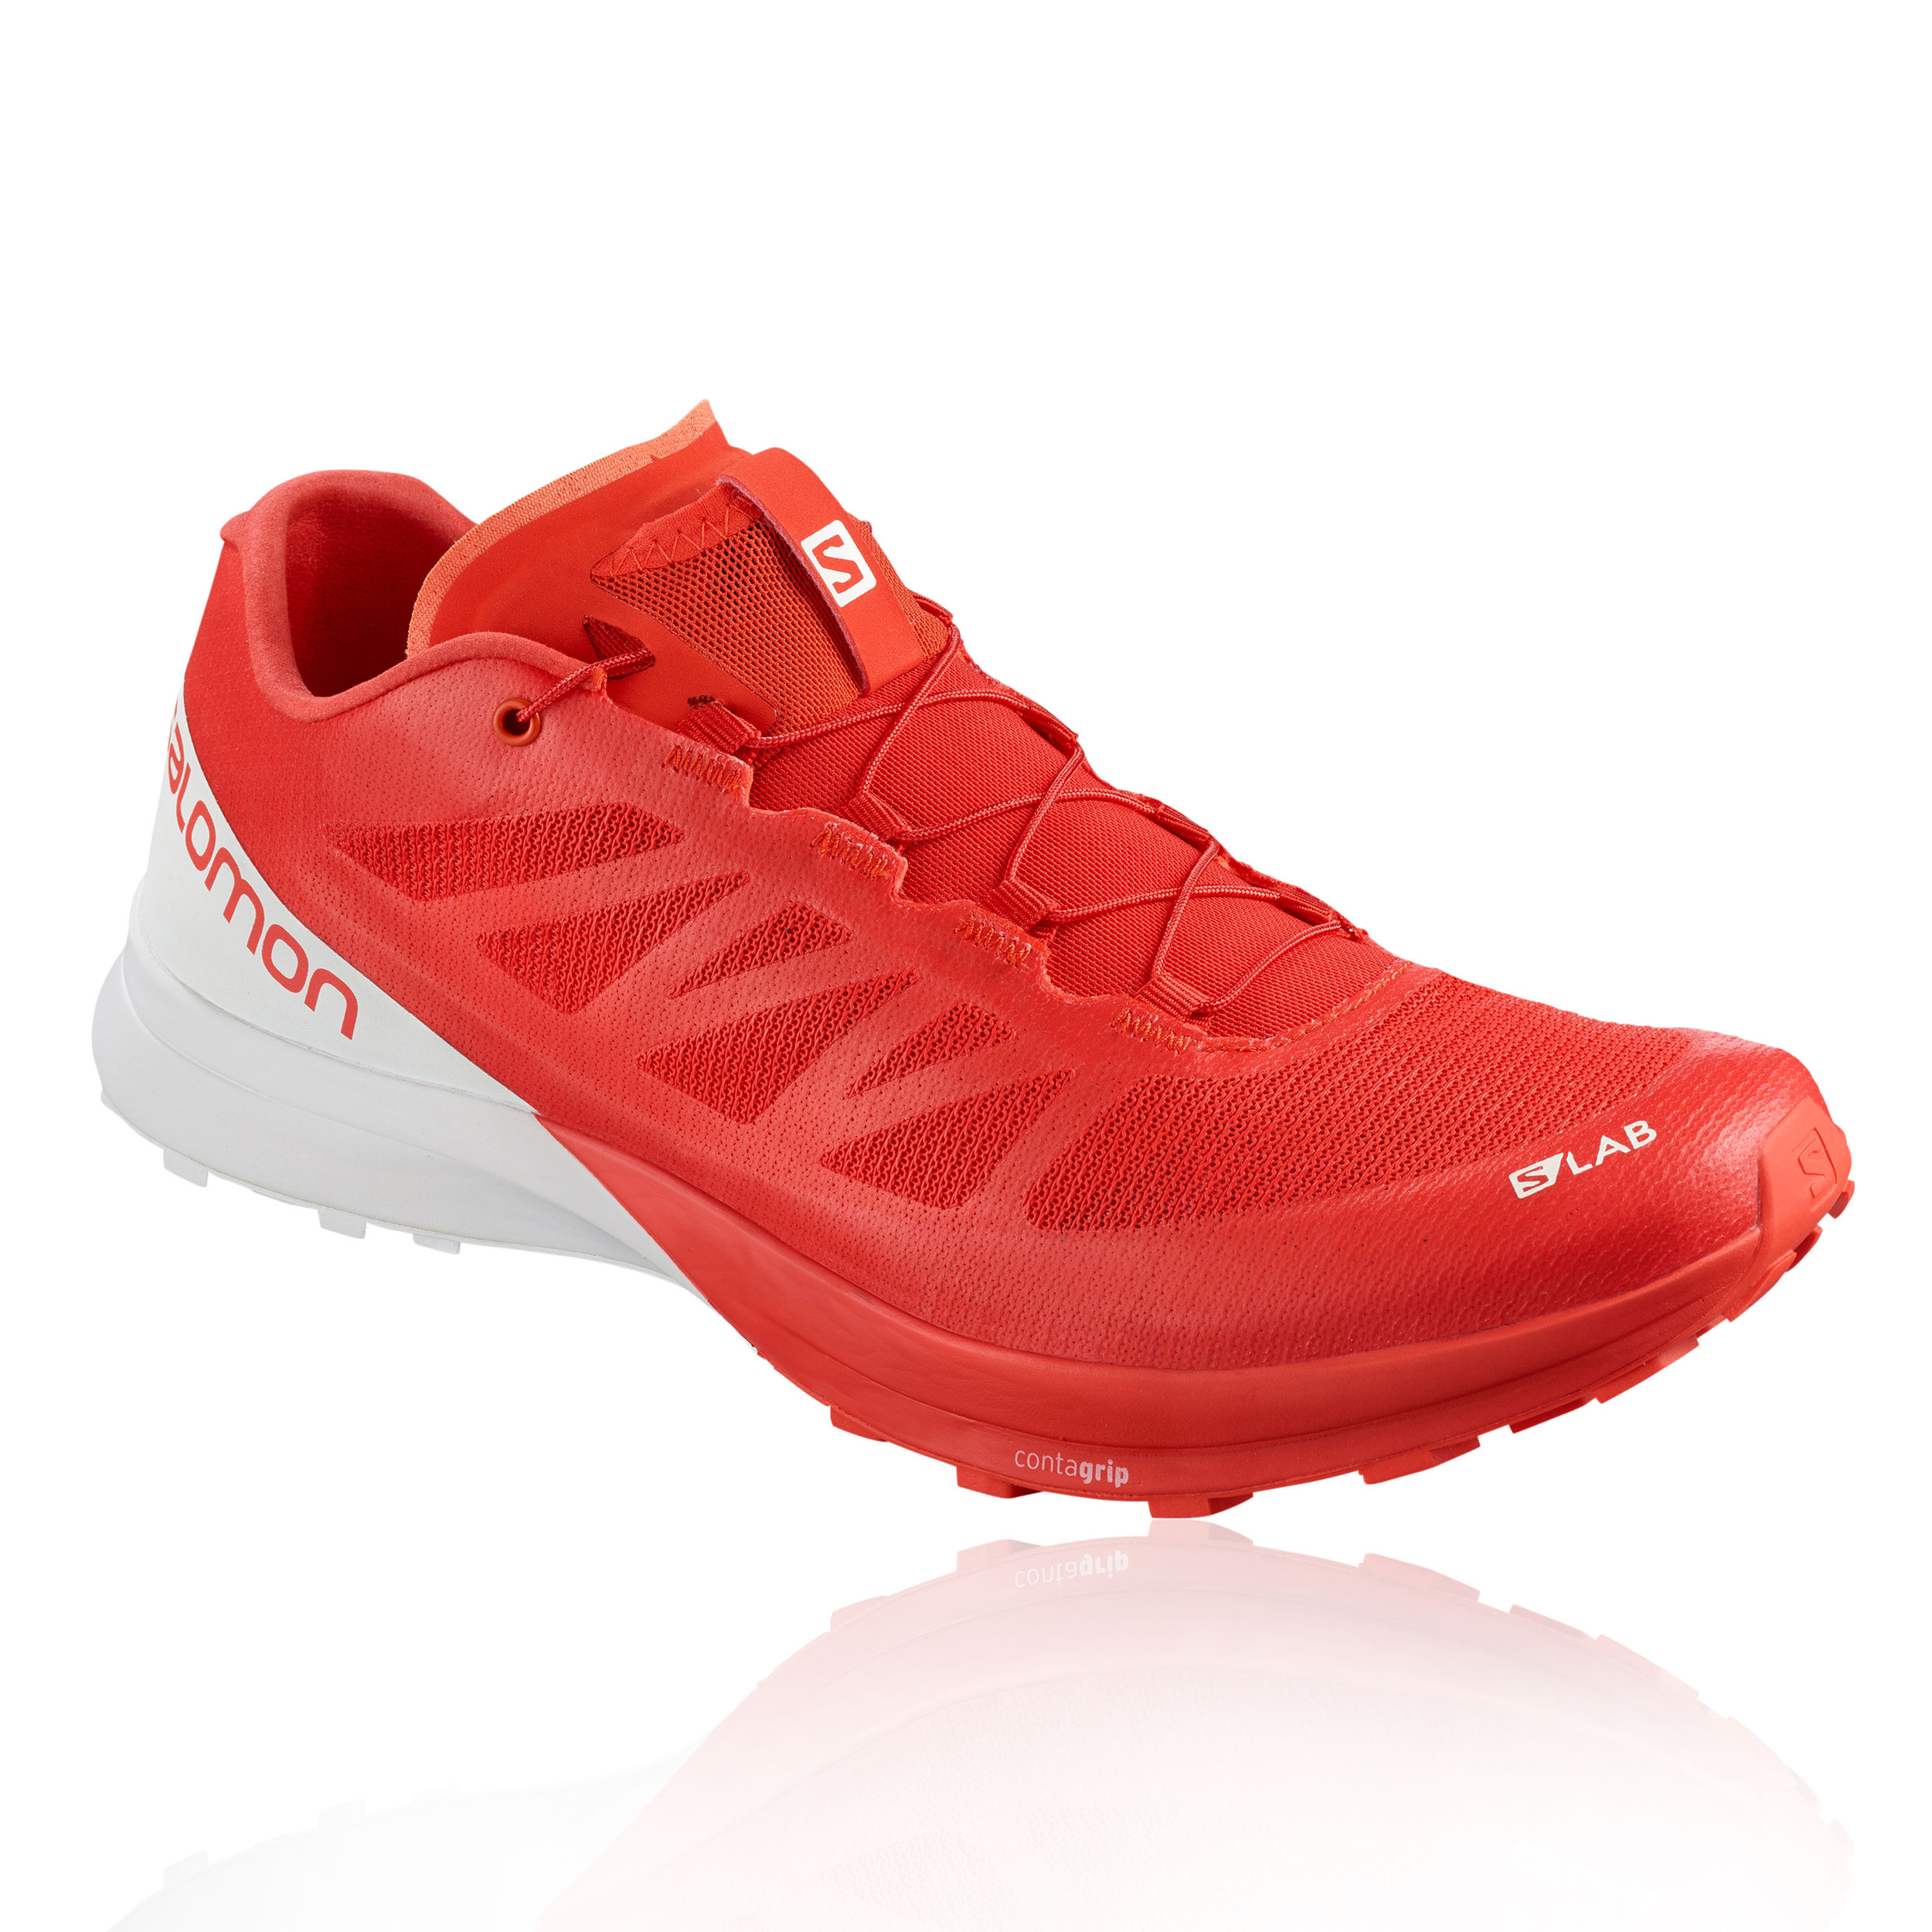 203983a41ba0 Details about Salomon Unisex S-Lab Sense 7 Trail Running Shoes Trainers  Sneakers Red White